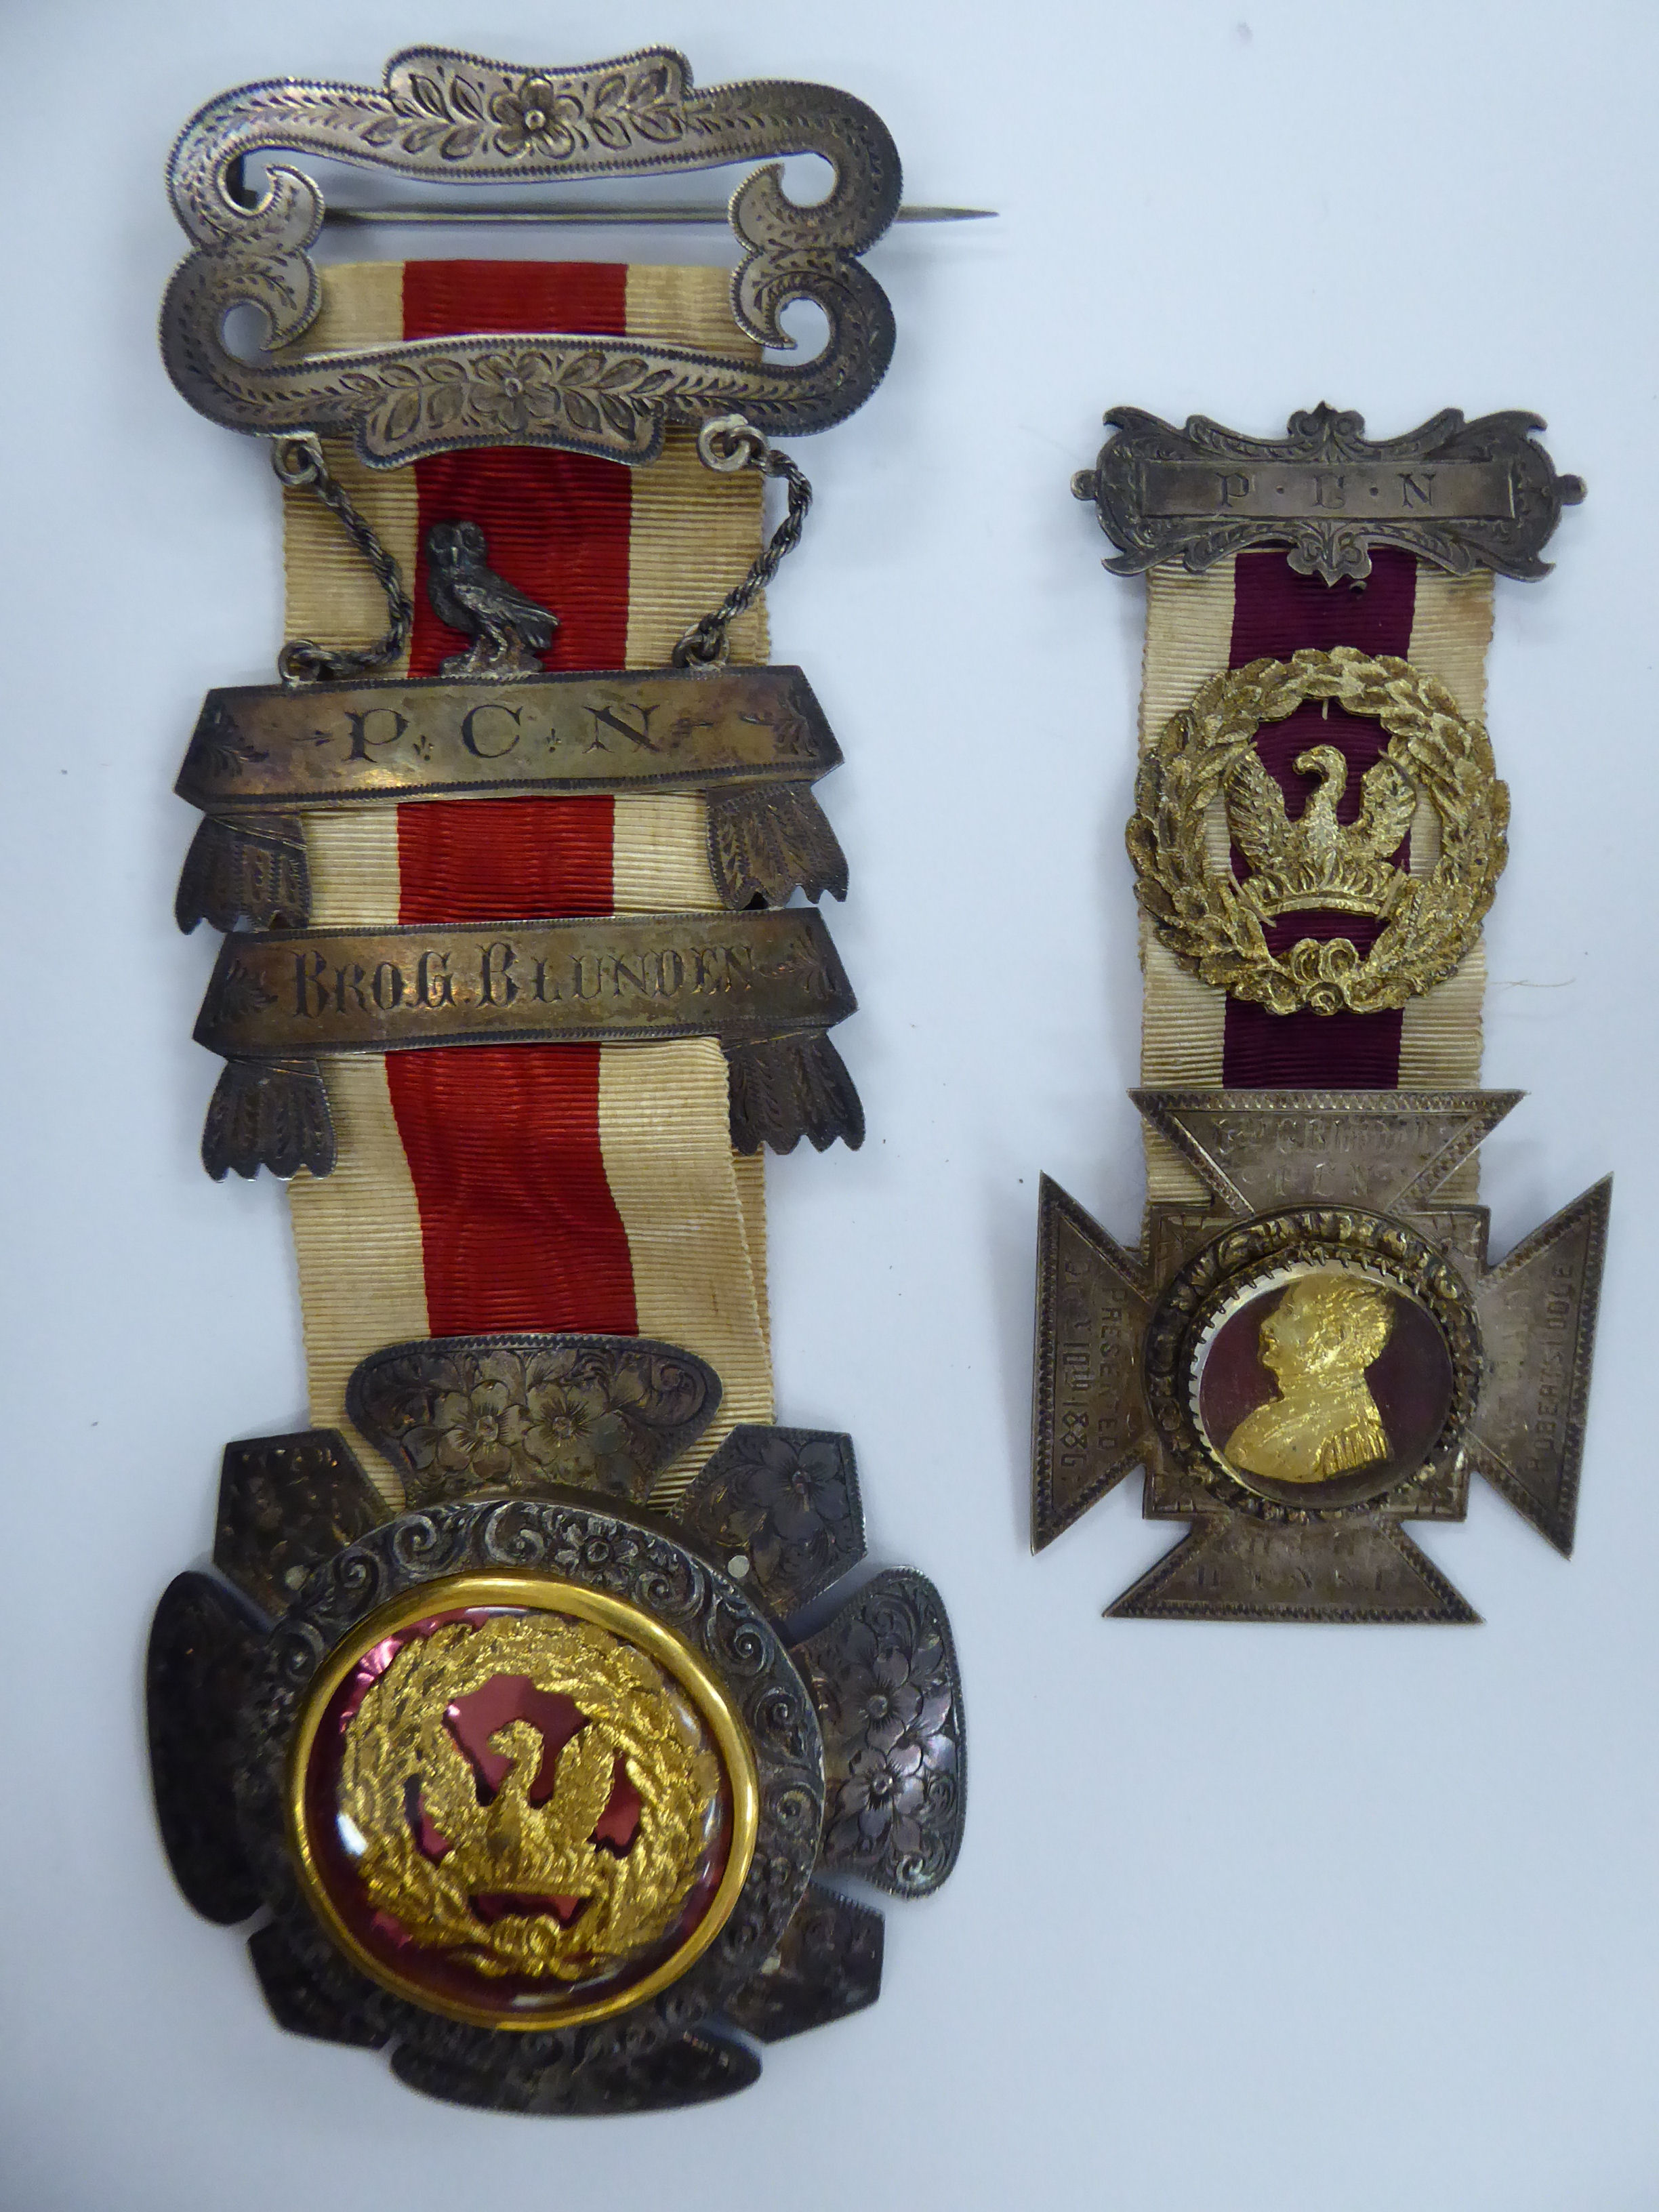 Two late Victorian Masonic medals dated 1886 and 1889 11